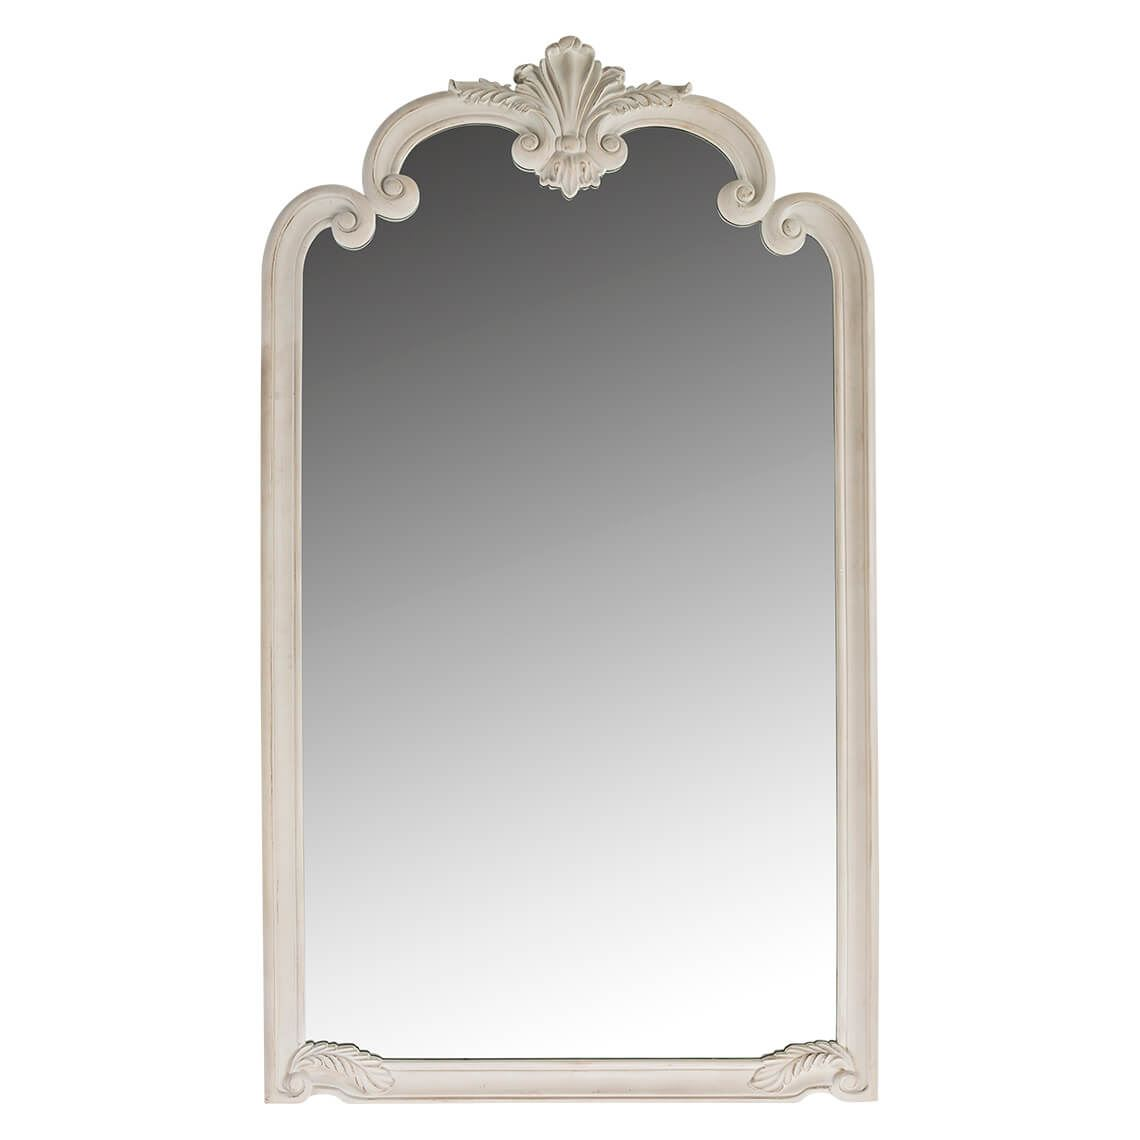 Elsa Mirror Size W 104cm x D 6cm x H 185cm in White Wash Polyurethane/Glass Freedom by Freedom, a Mirrors for sale on Style Sourcebook